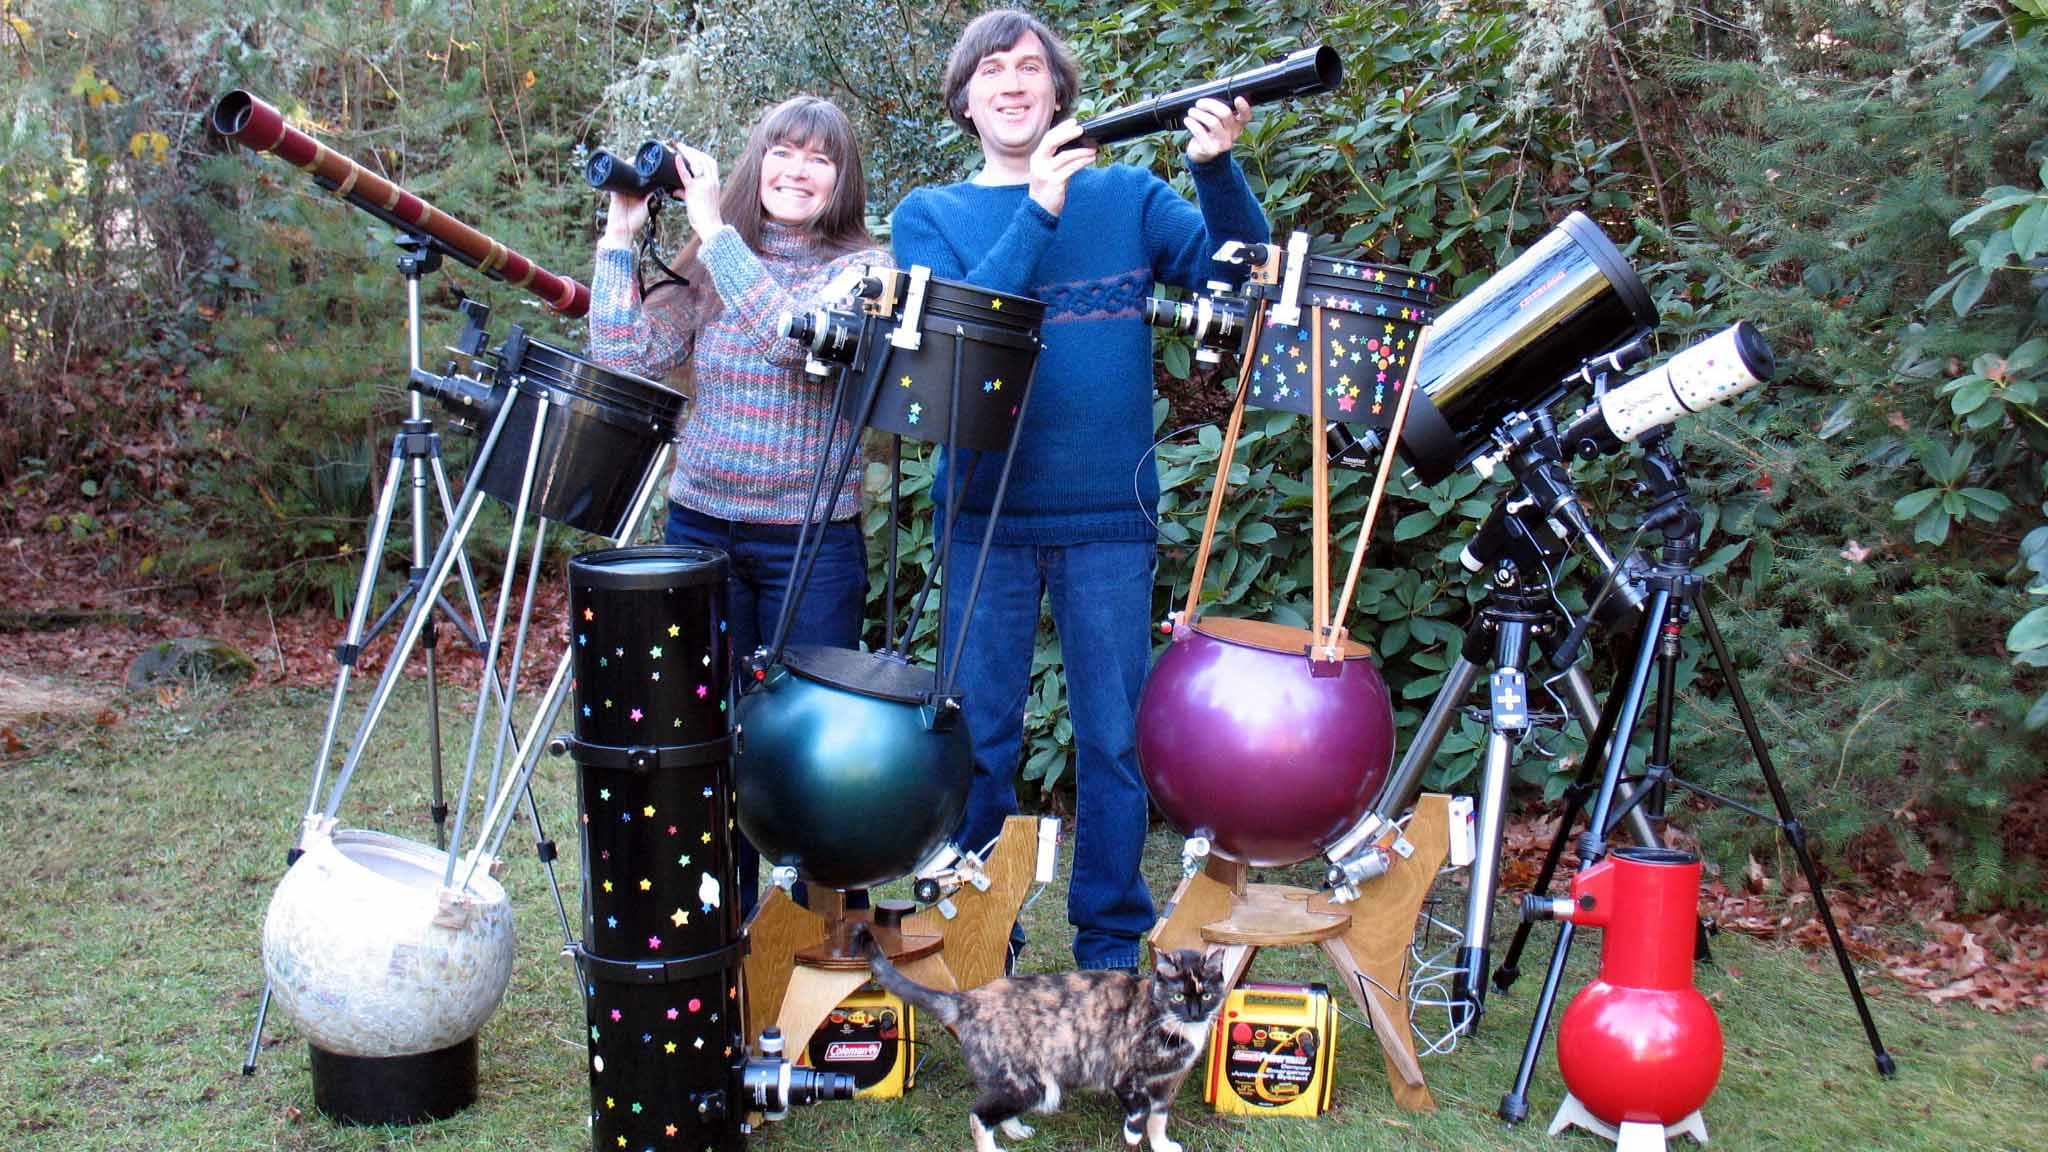 "Jerry Oltion,""Sky and Telescope"" columnist and science fiction author, poses with several of his homemade telescopes."